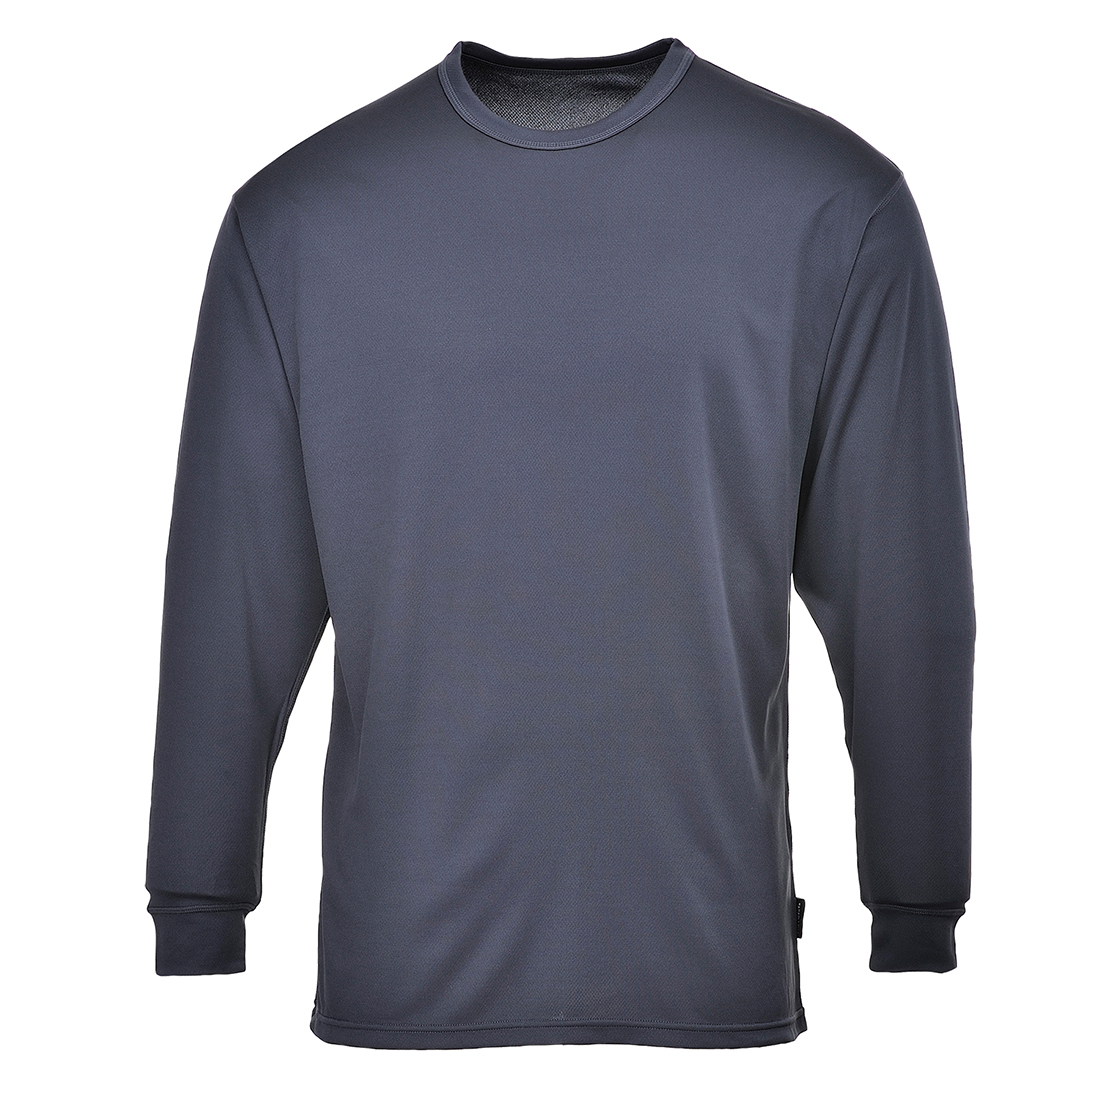 Base Layer Thermal Top L/S Charcoal XXL